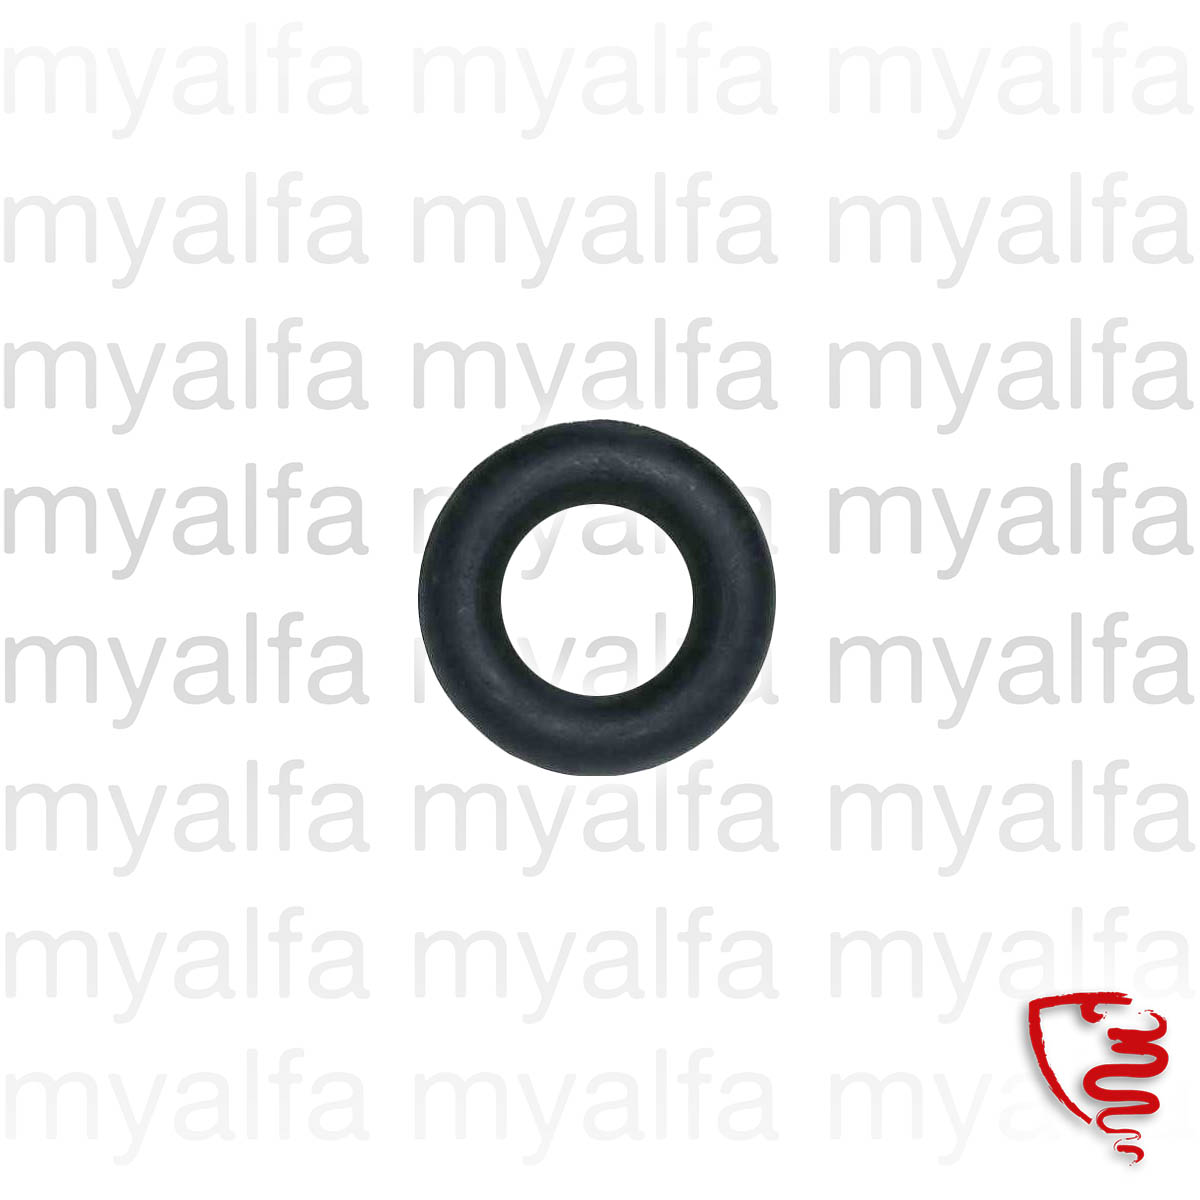 Rubber ring to escape for 116/119, Exhaust System, Attachment Parts